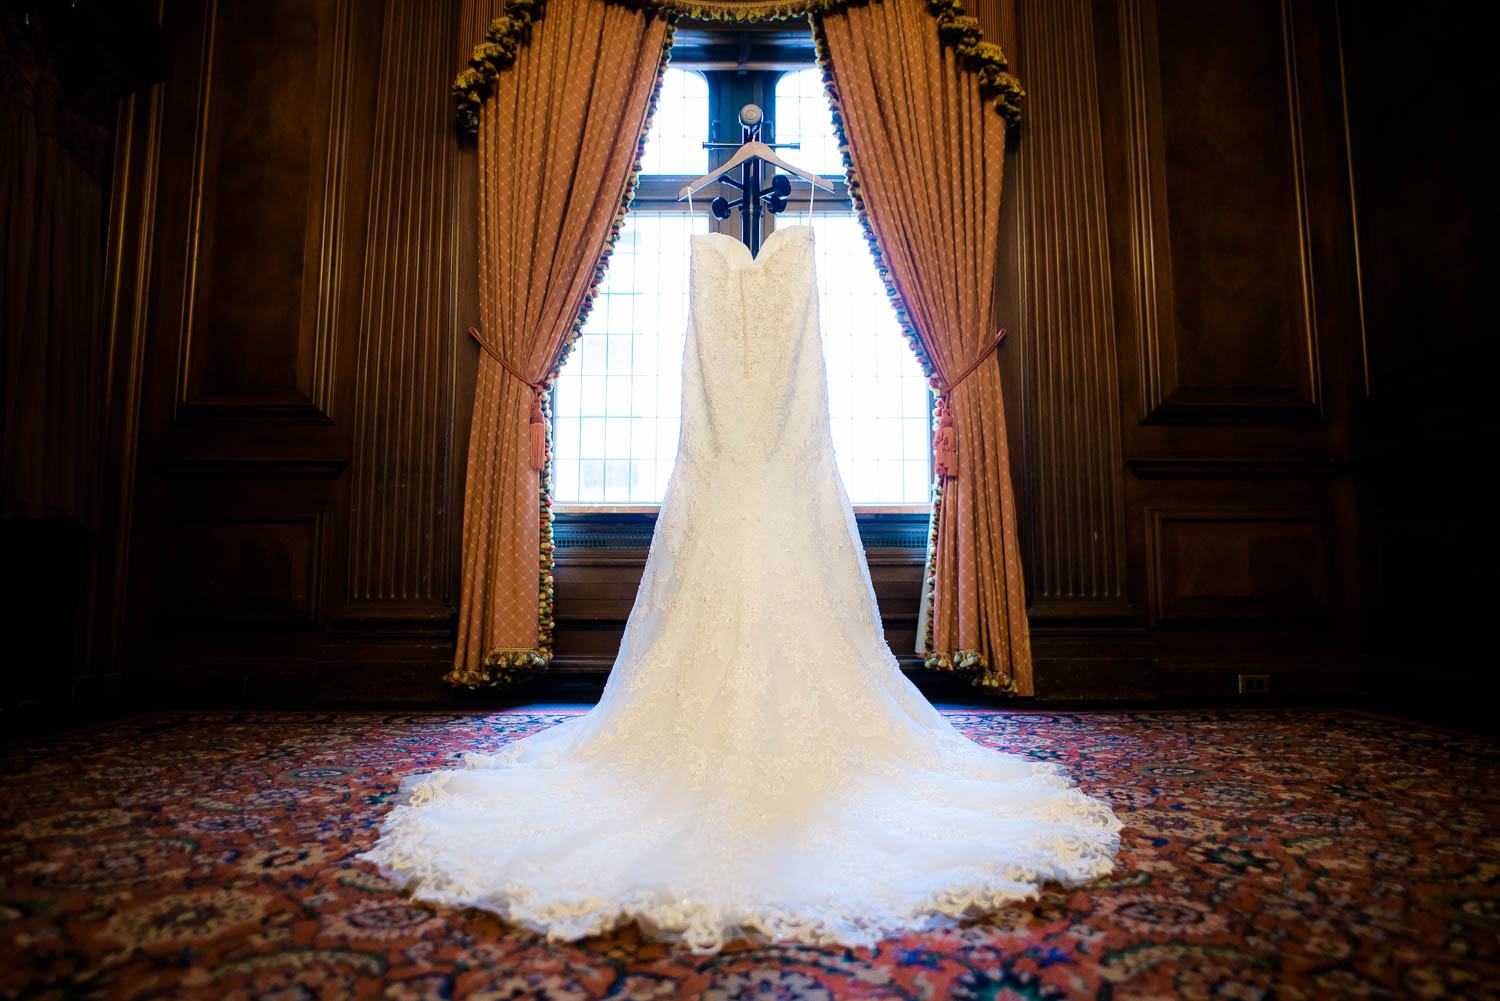 Detail photo of the dress before the couple's University Club of Chicago wedding.